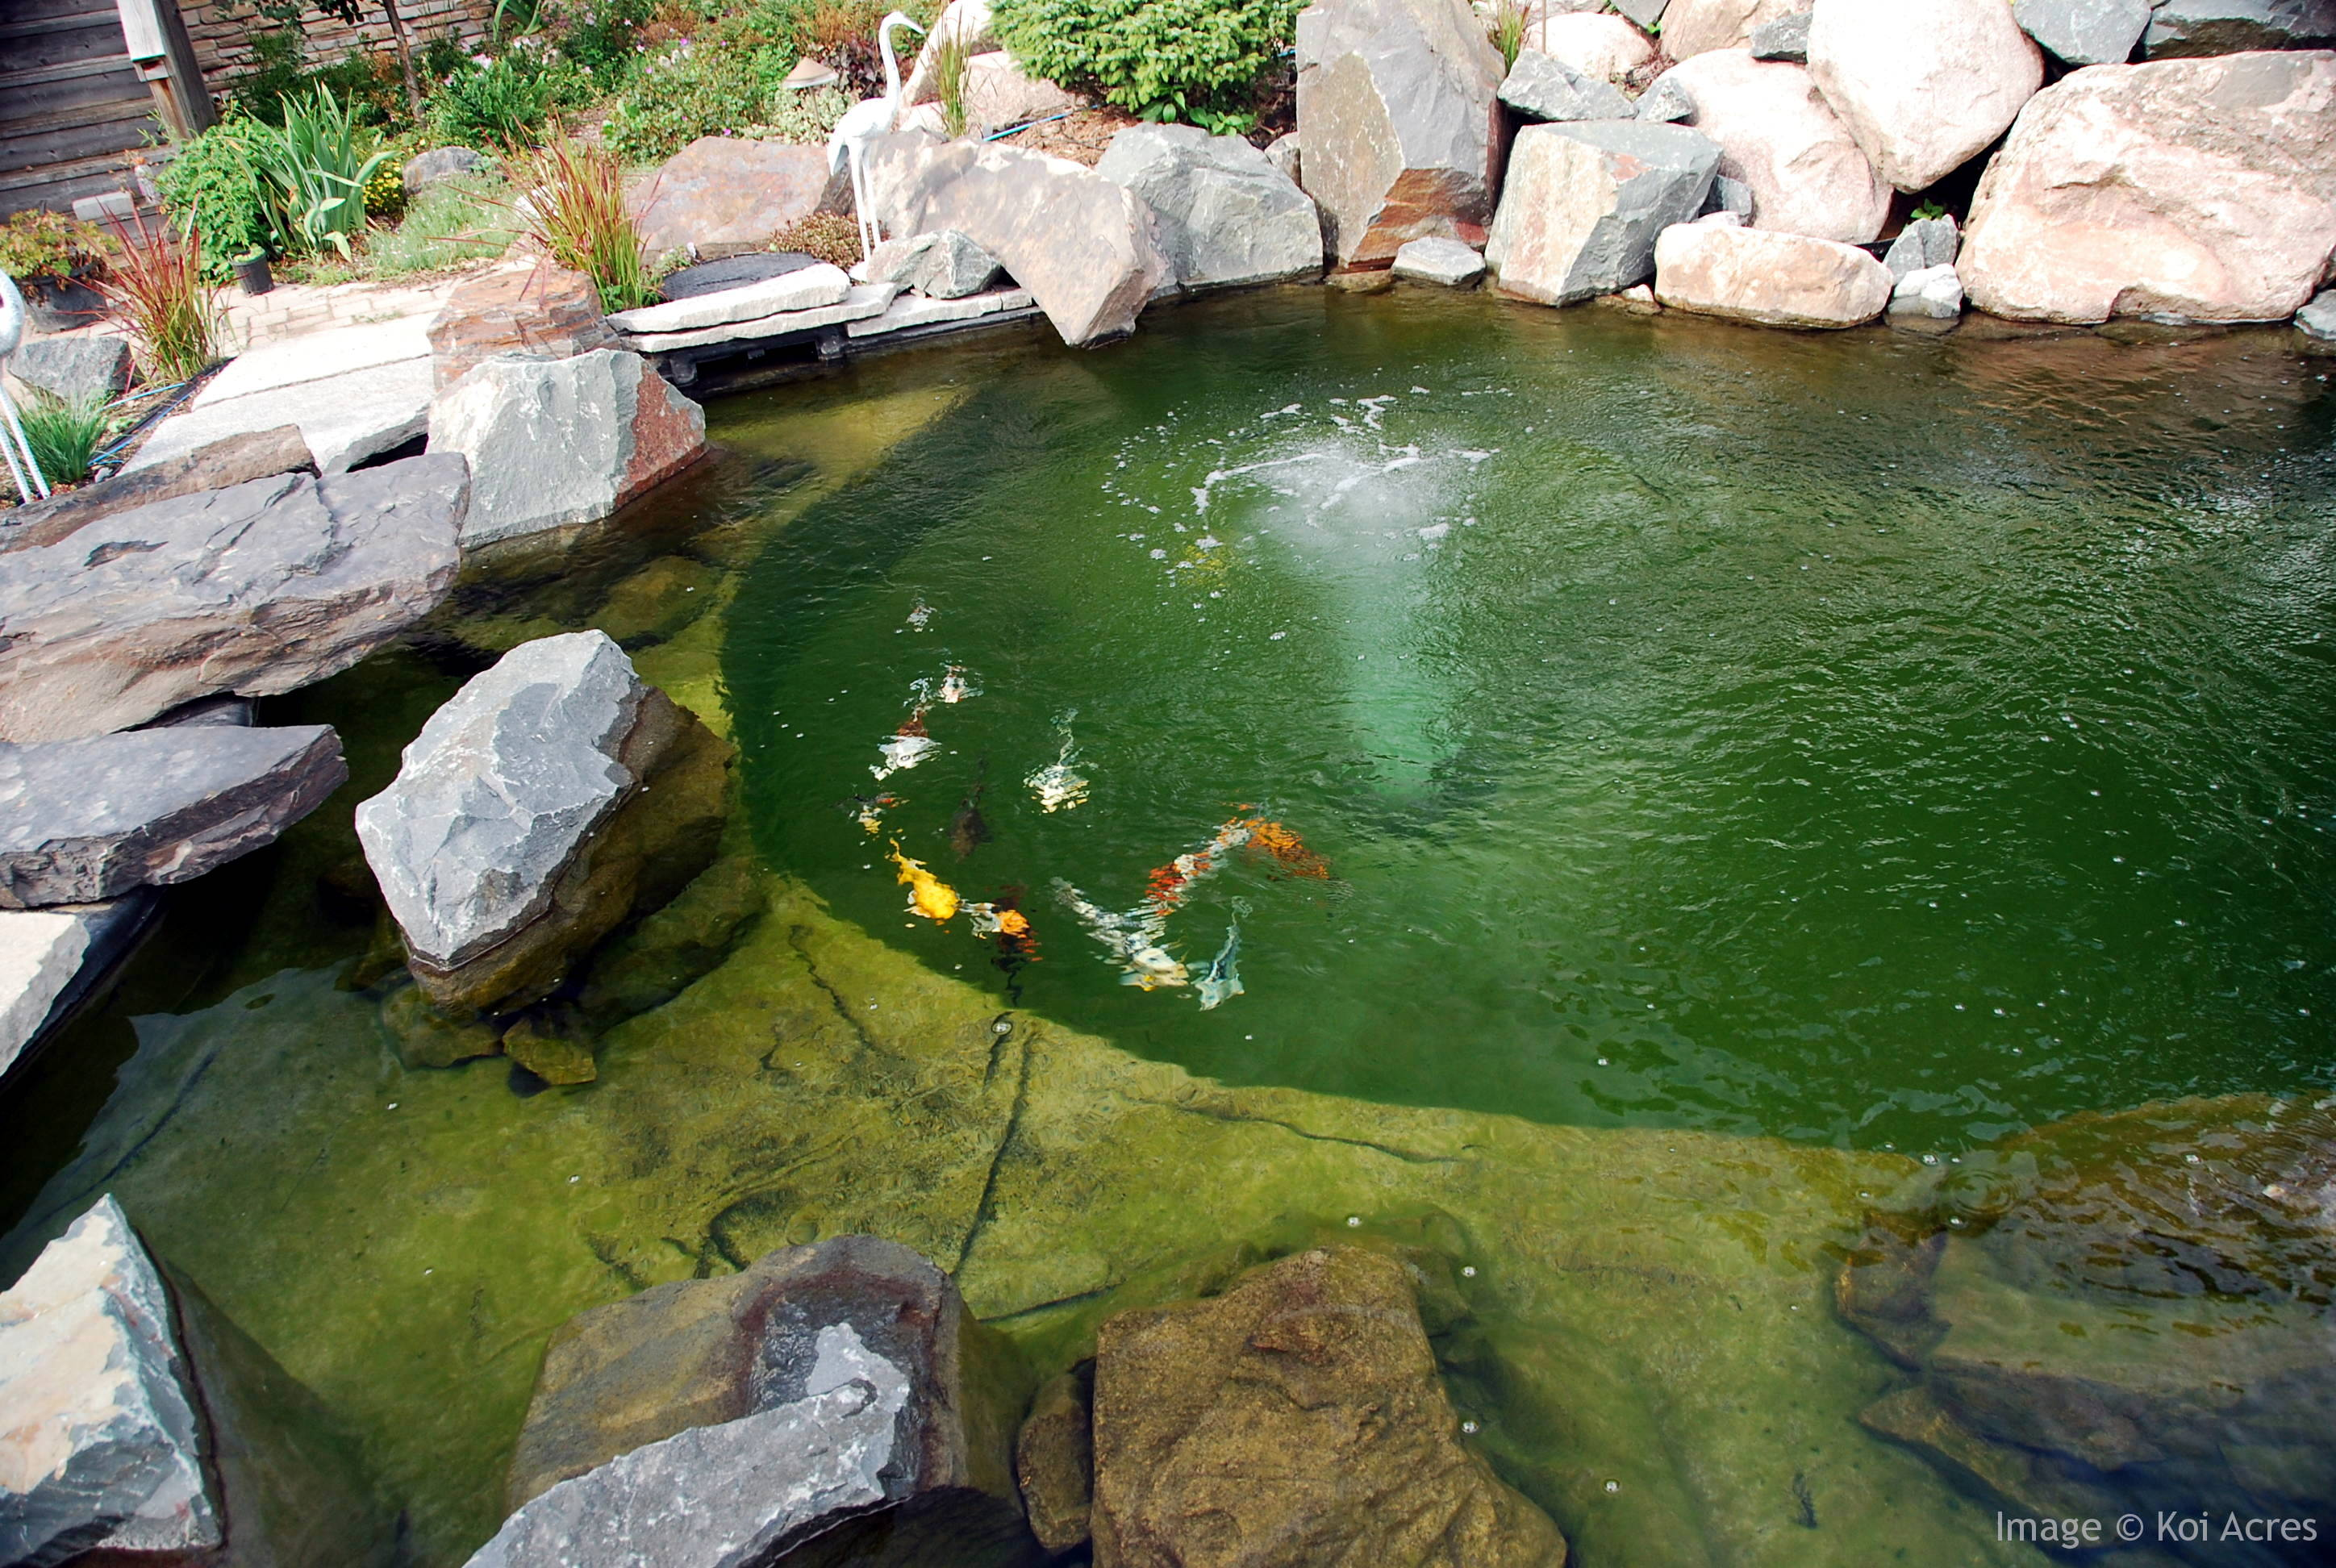 Koi fishing biological science picture directory for Koi fish pond care